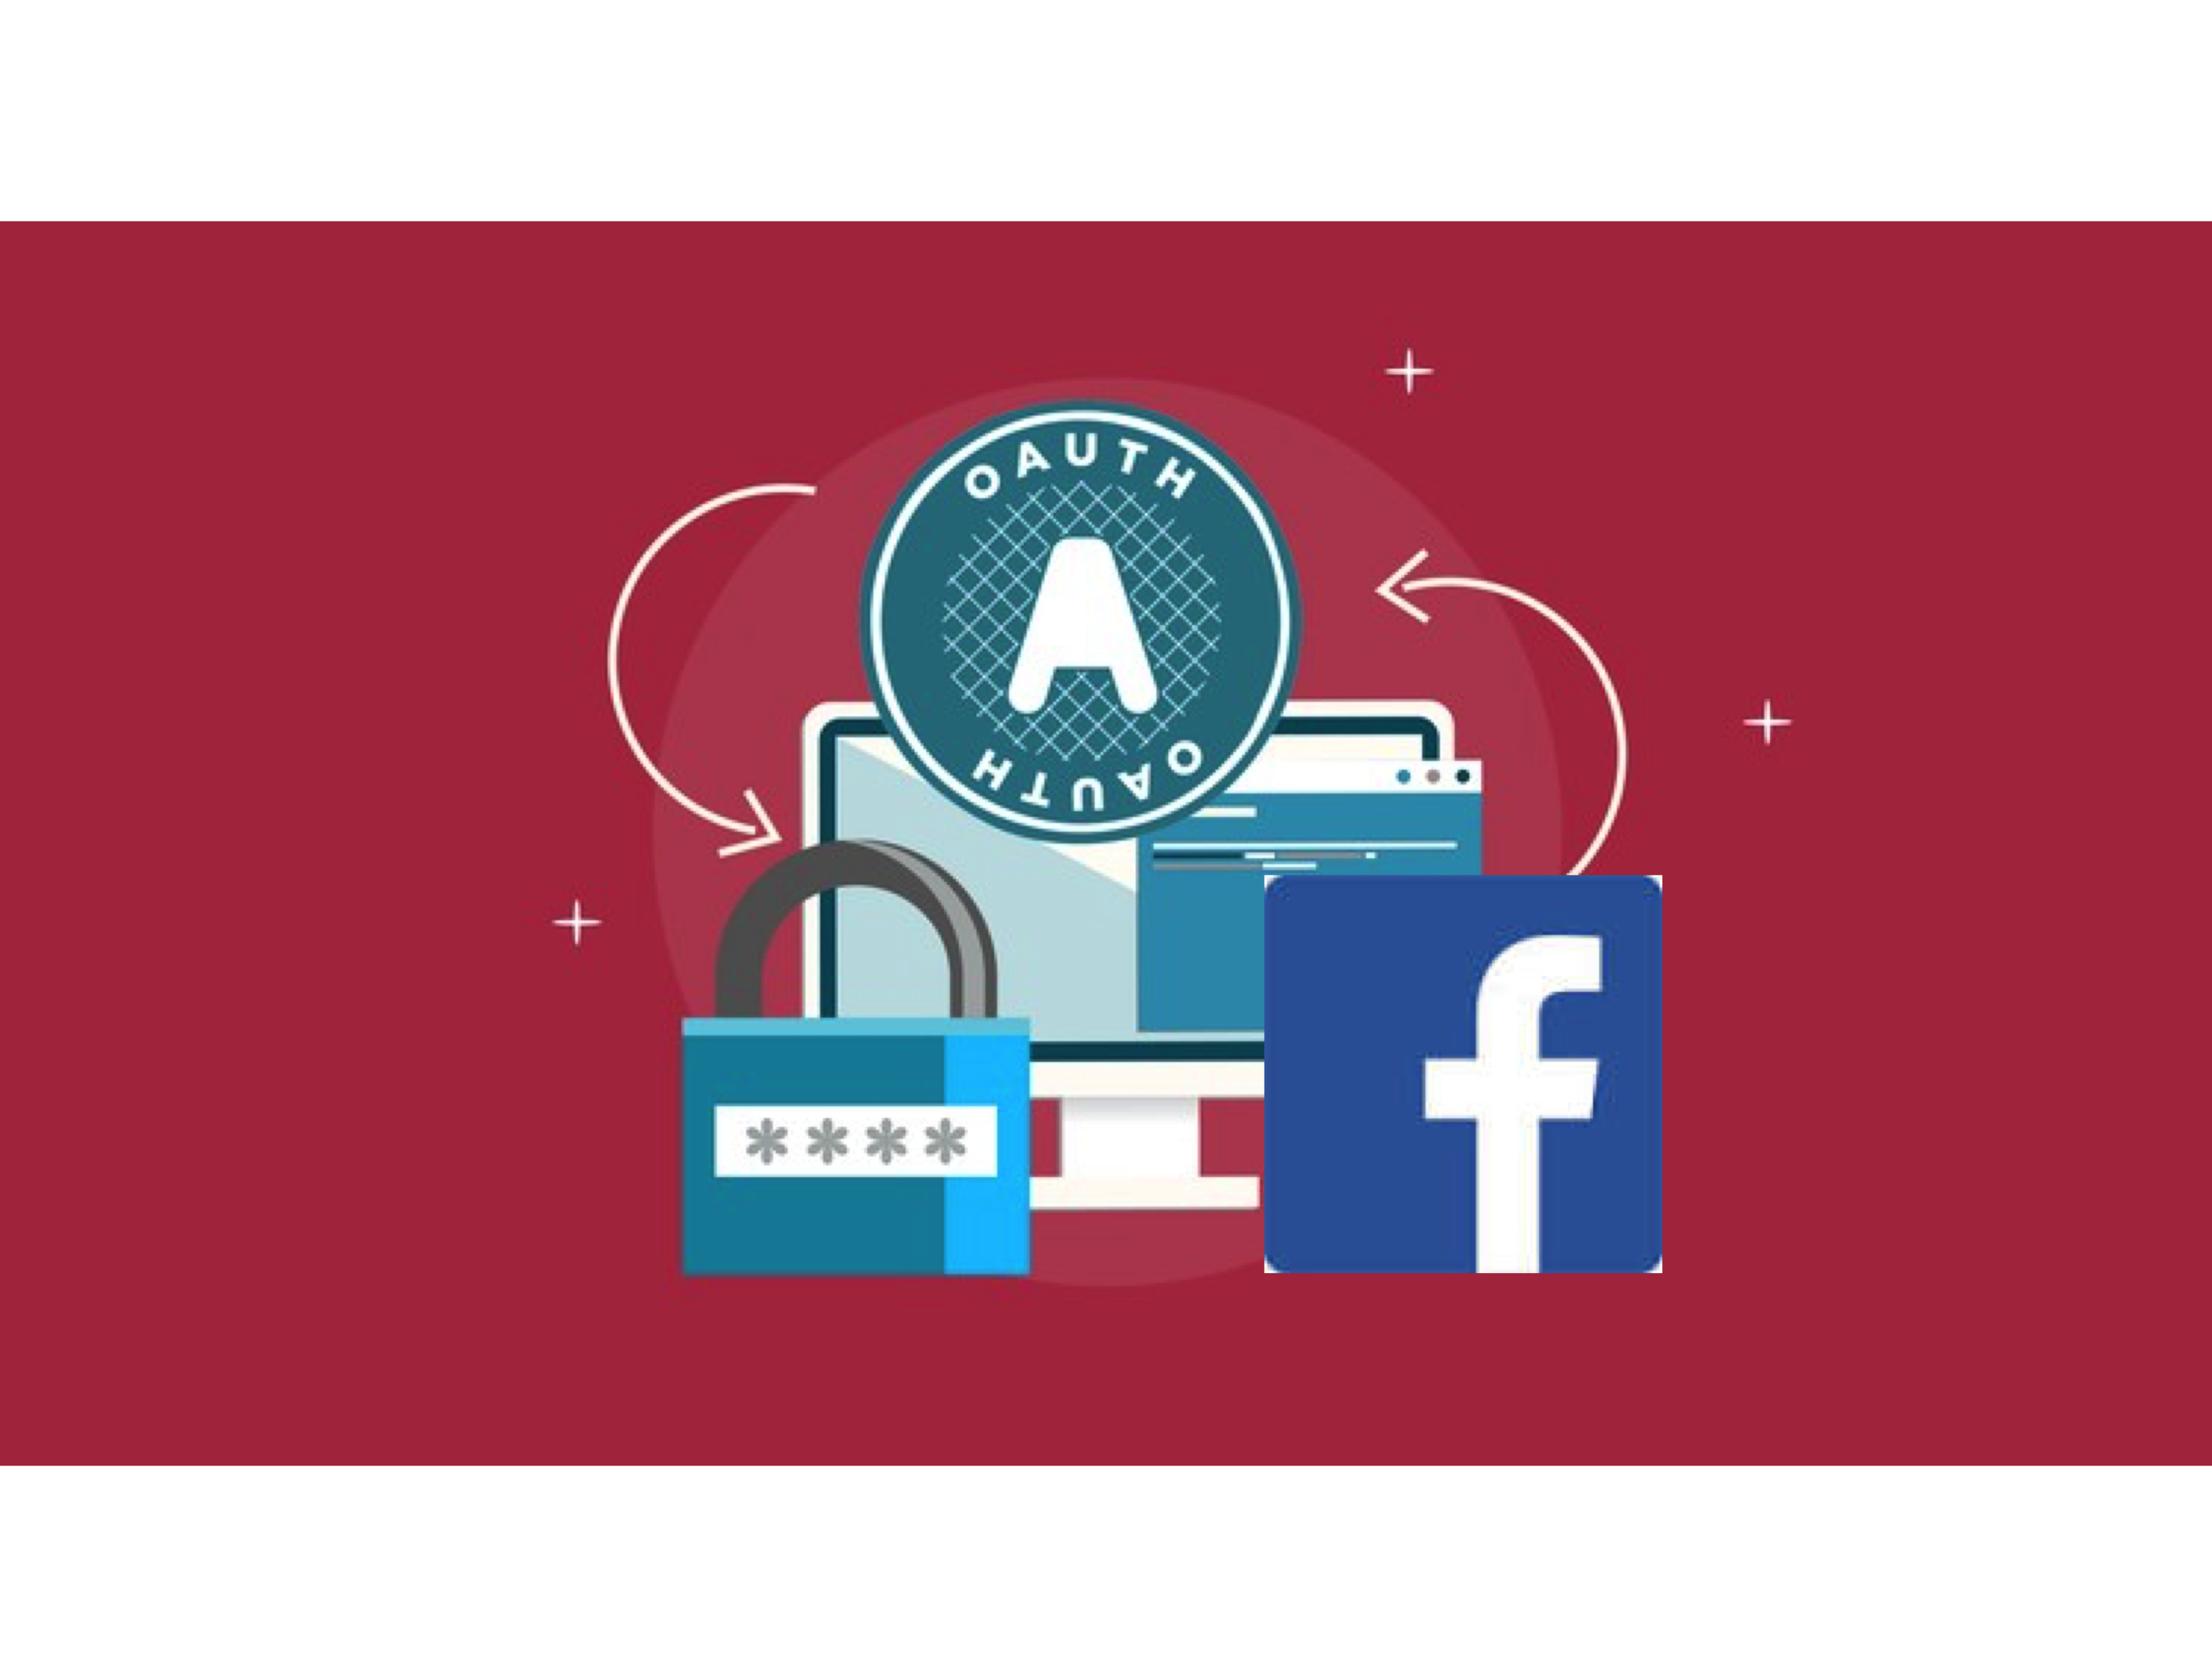 Learn OAuth for Accessing the Facebook API